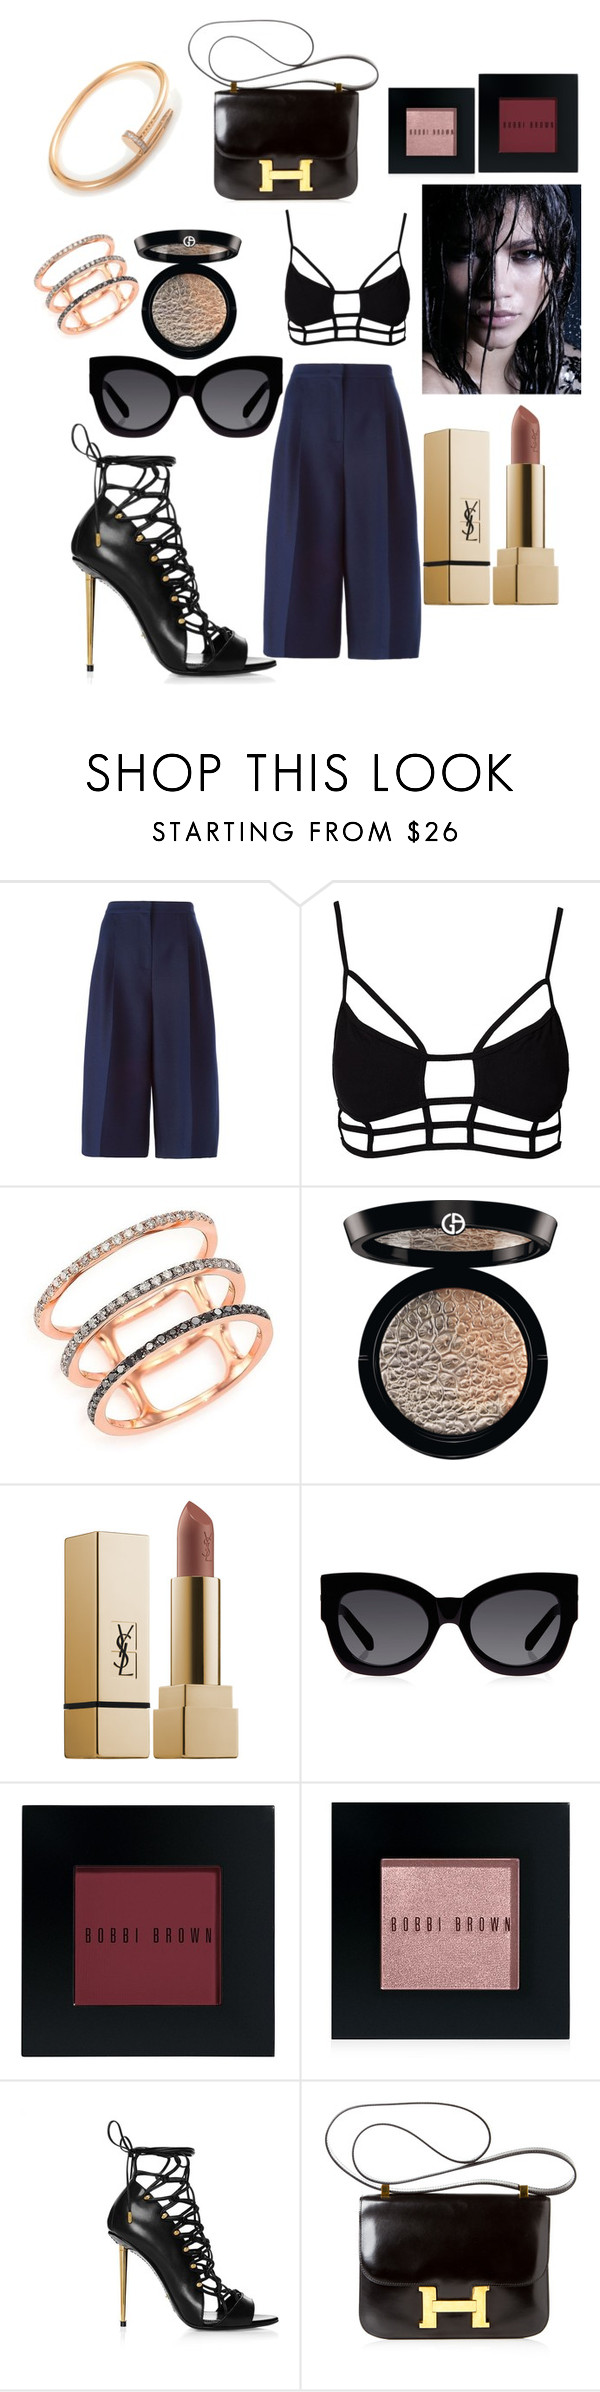 """Untitled #119"" by marinaxmilos ❤ liked on Polyvore featuring Valentino, One Teaspoon, EF Collection, Giorgio Armani, Yves Saint Laurent, Karen Walker, Bobbi Brown Cosmetics, Hermès and Cartier"